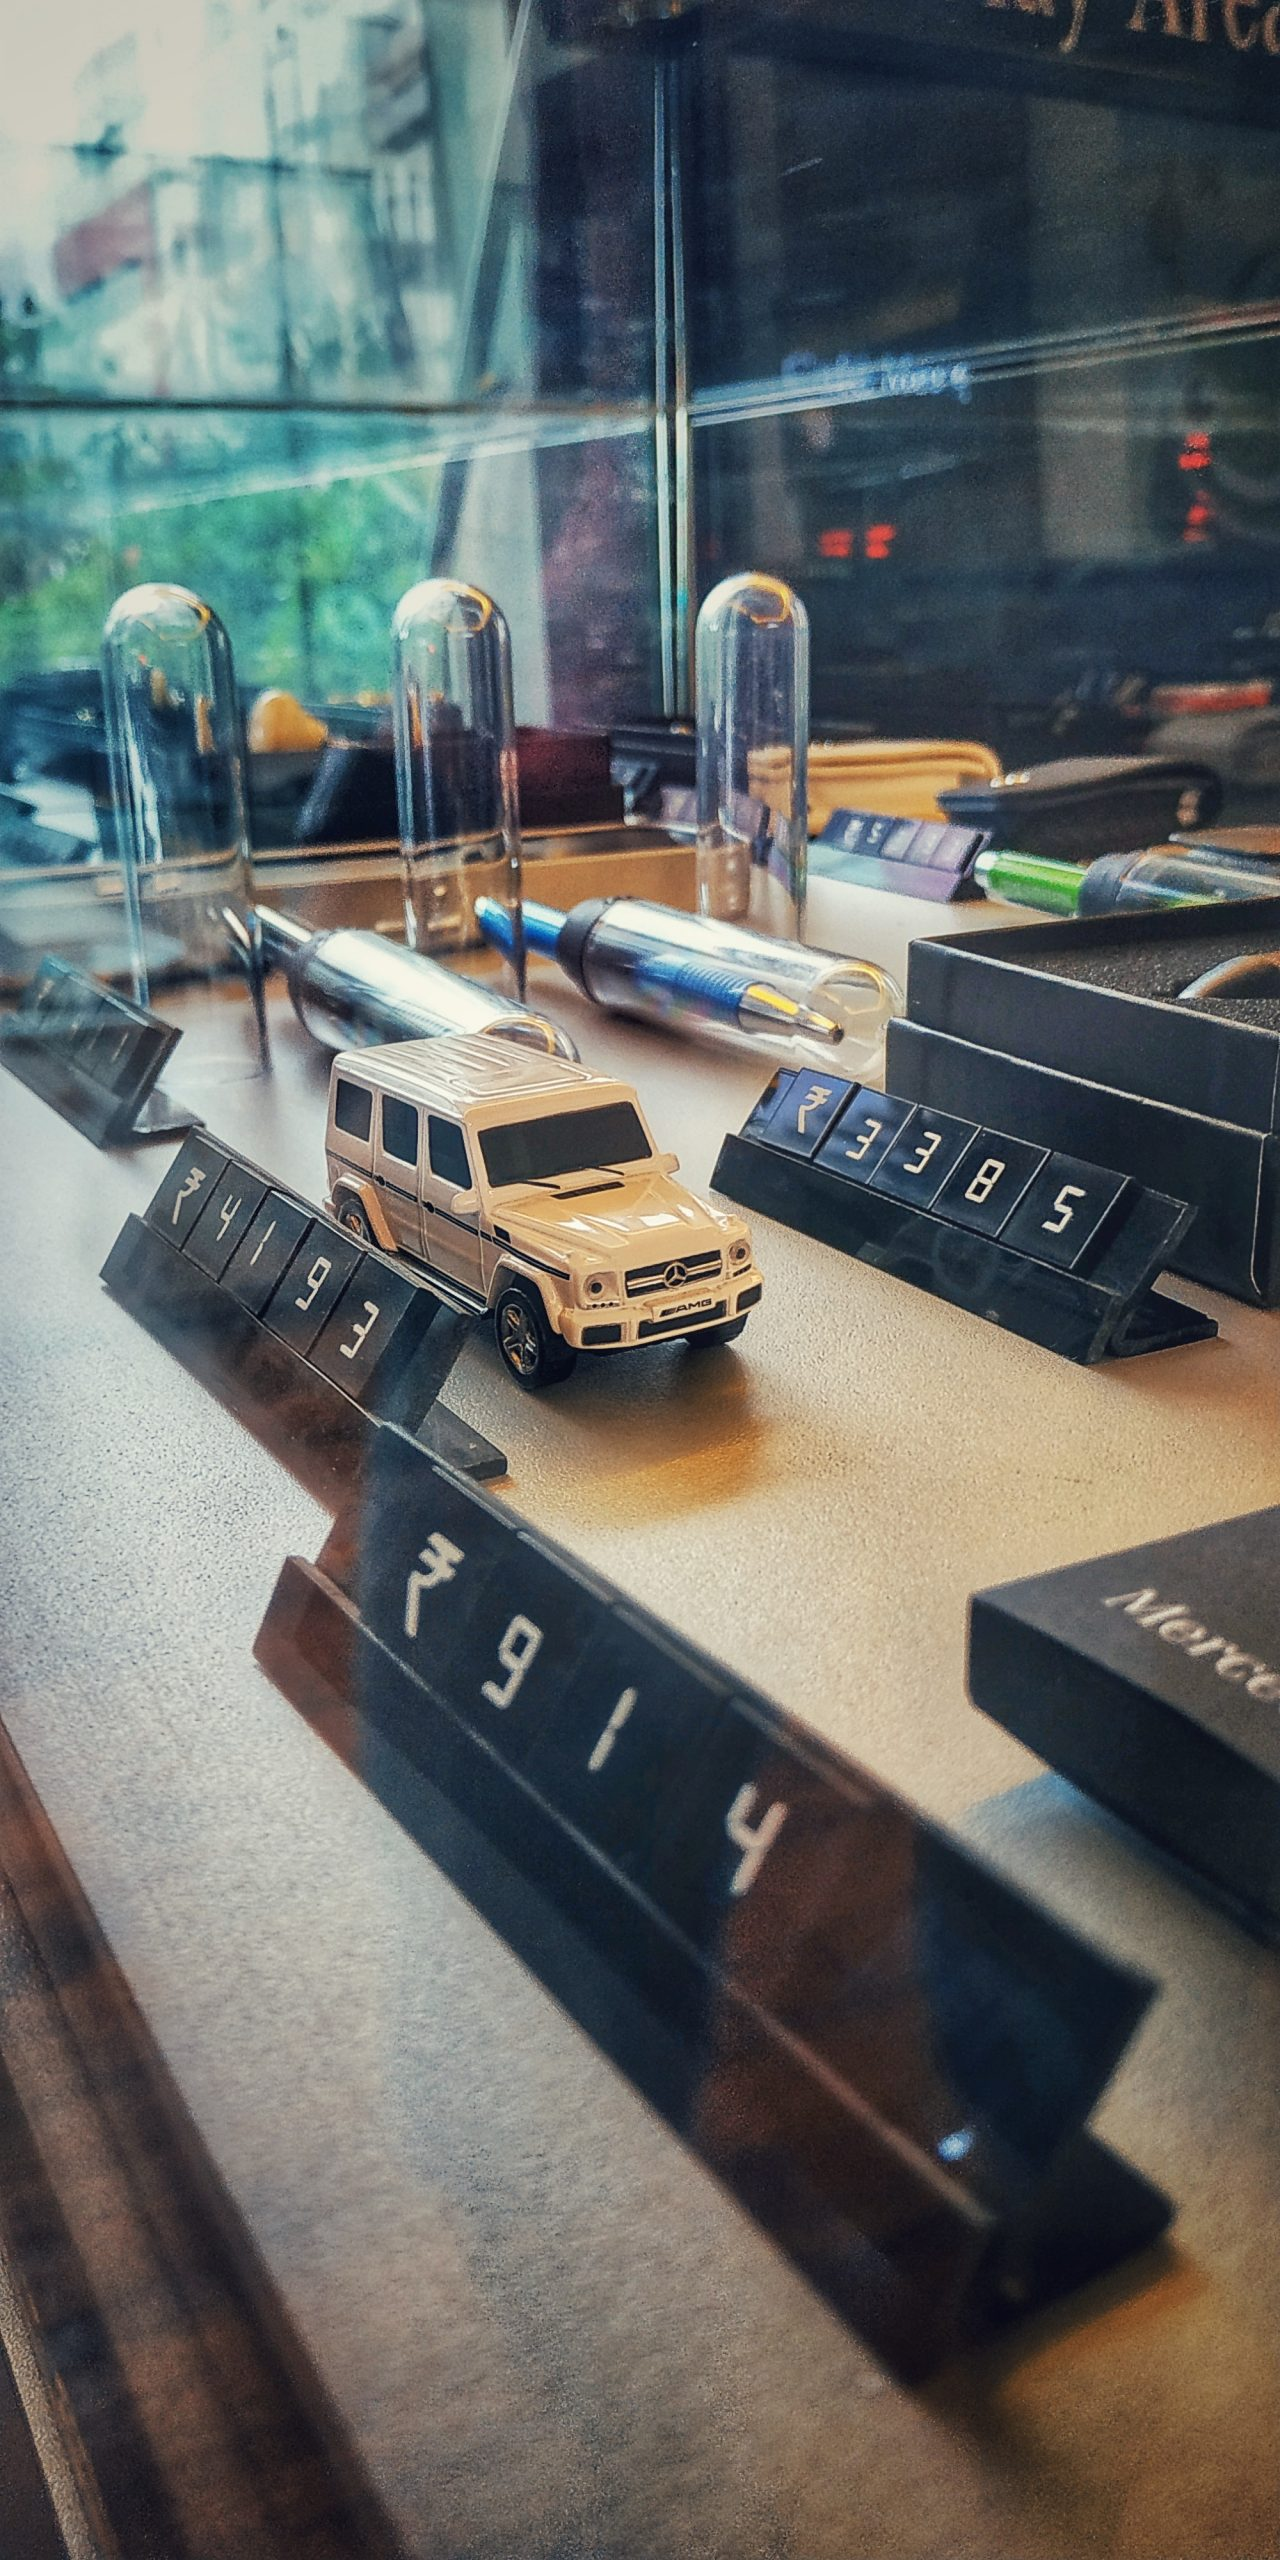 Miniature model of an AMG